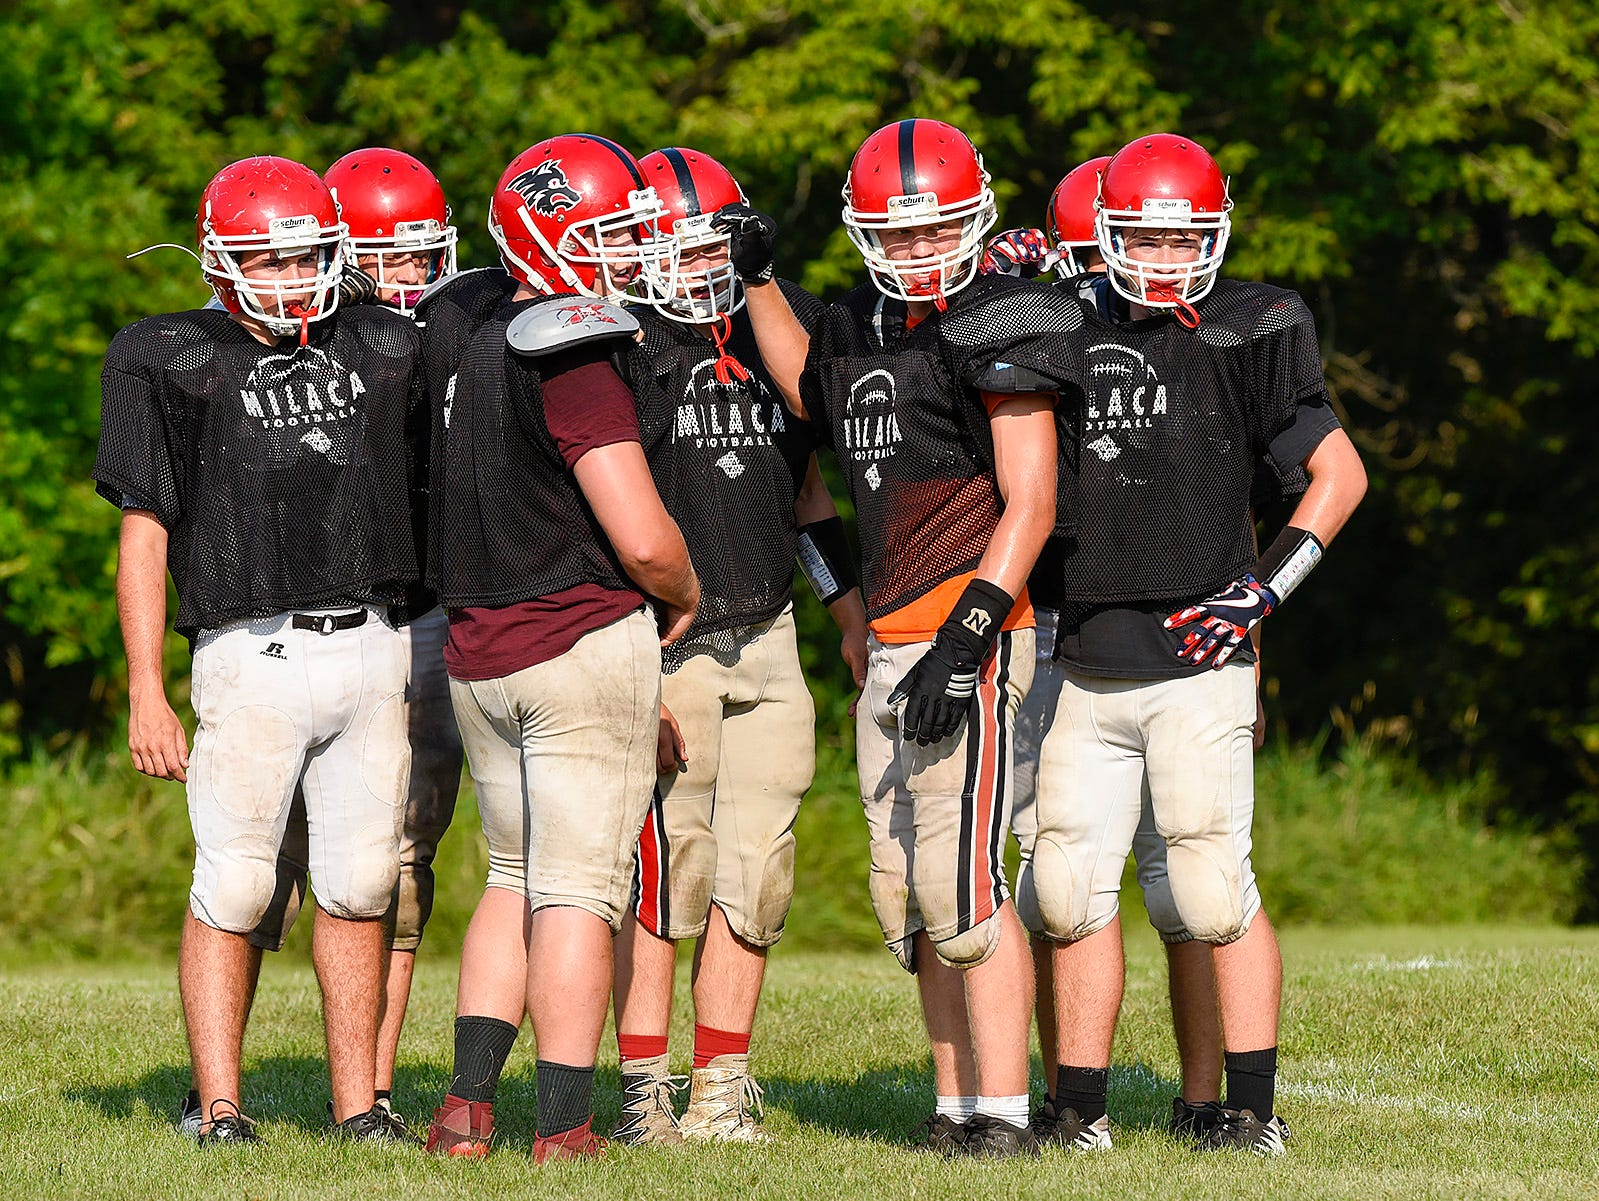 Milaca players watch for the next play to be called during practice Thursday, Aug. 16, in Milaca.